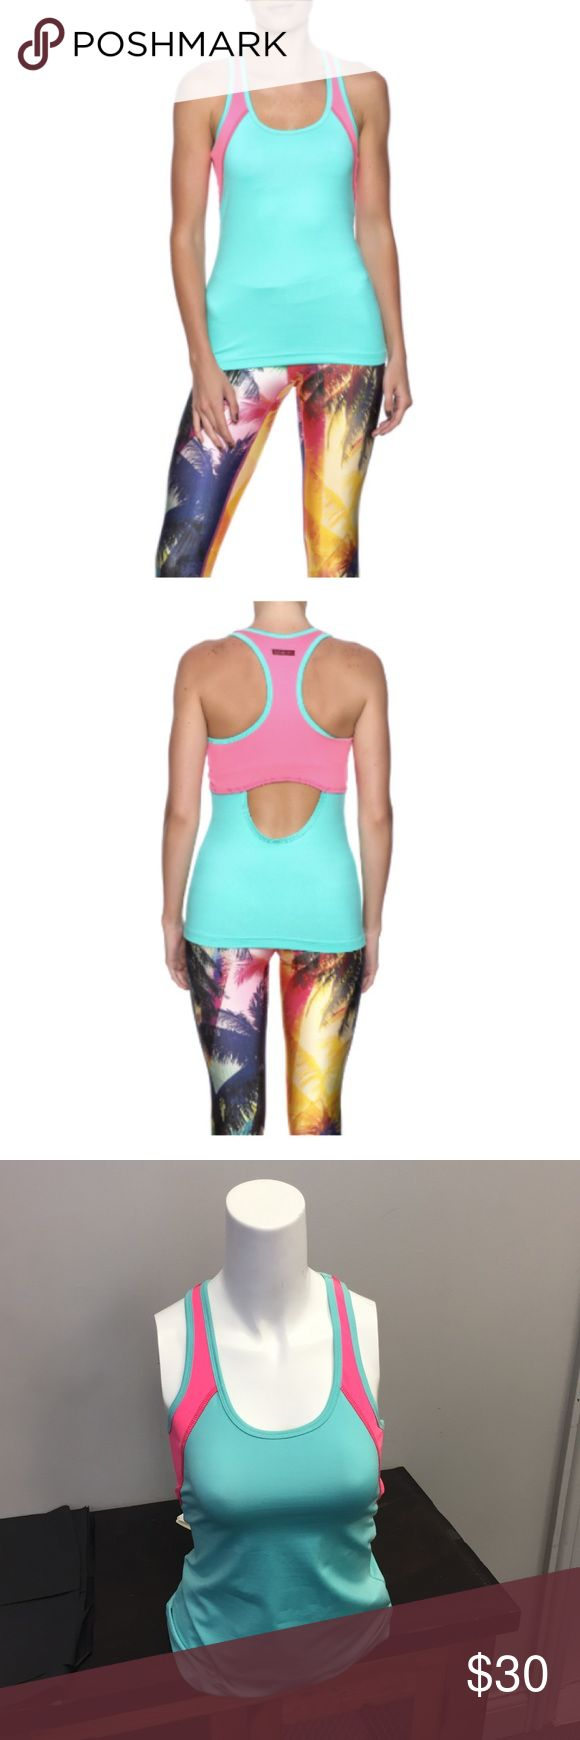 Hard Tail Neon Pink & Seafoam Tank Hot pink & aqua Tank by Hard Tail. New with Tags, never been worn before! Built in shelf bra without cups. Meant to fit close to the body. Open back detail. Bright summer colors!! 🏝💕 Hard Tail Tops Tank Tops